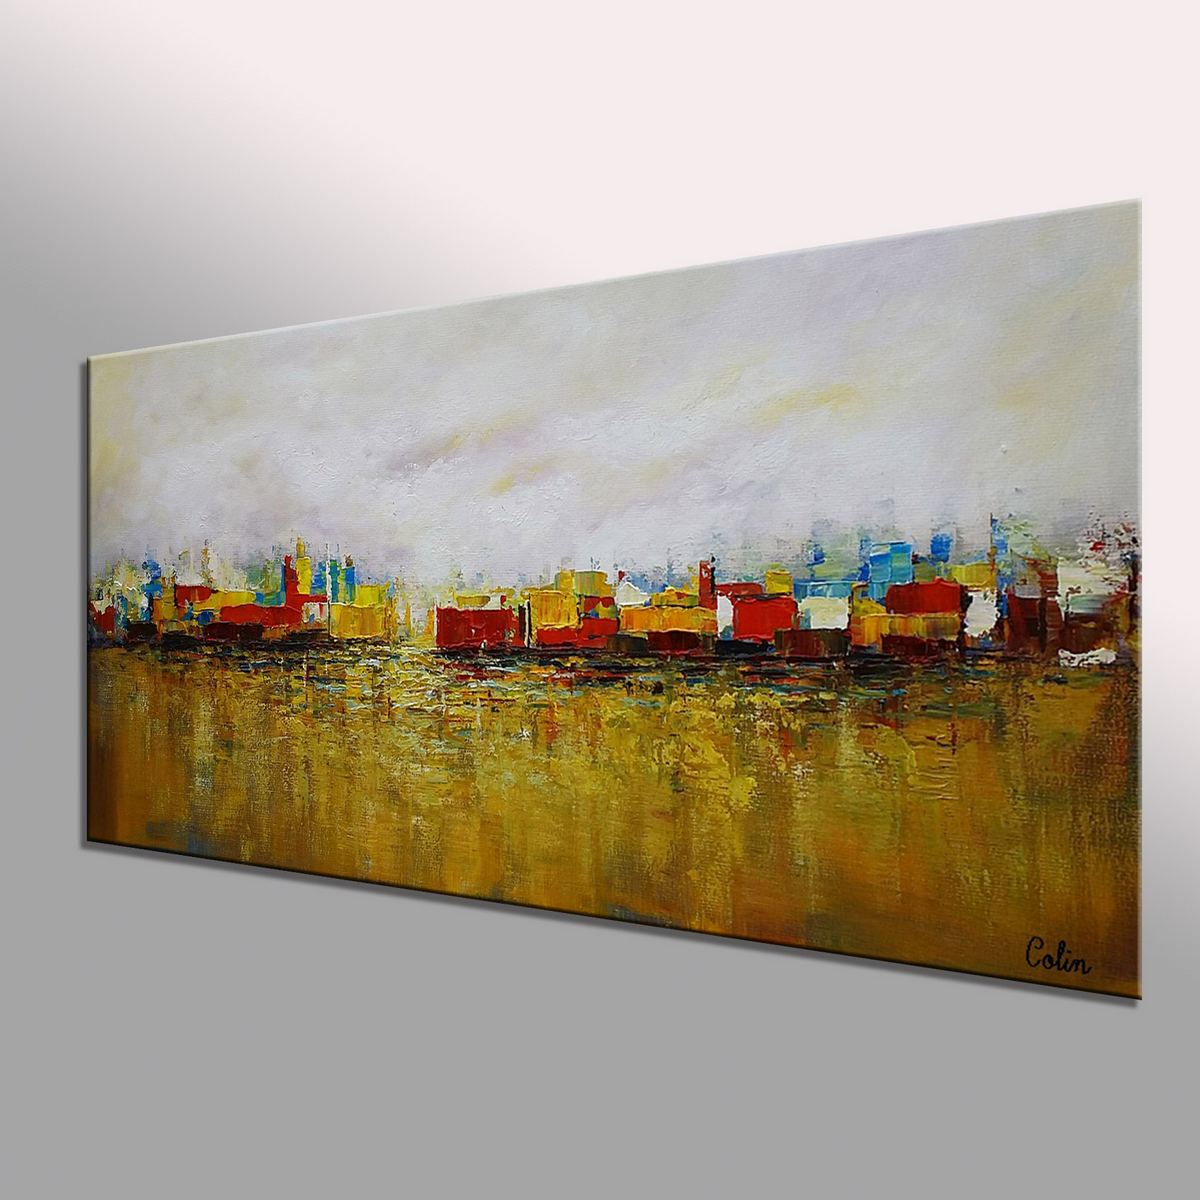 Cityscape Art, Canvas Wall Art, Landscape Painting, Contemporary Artwork, Art on Canvas